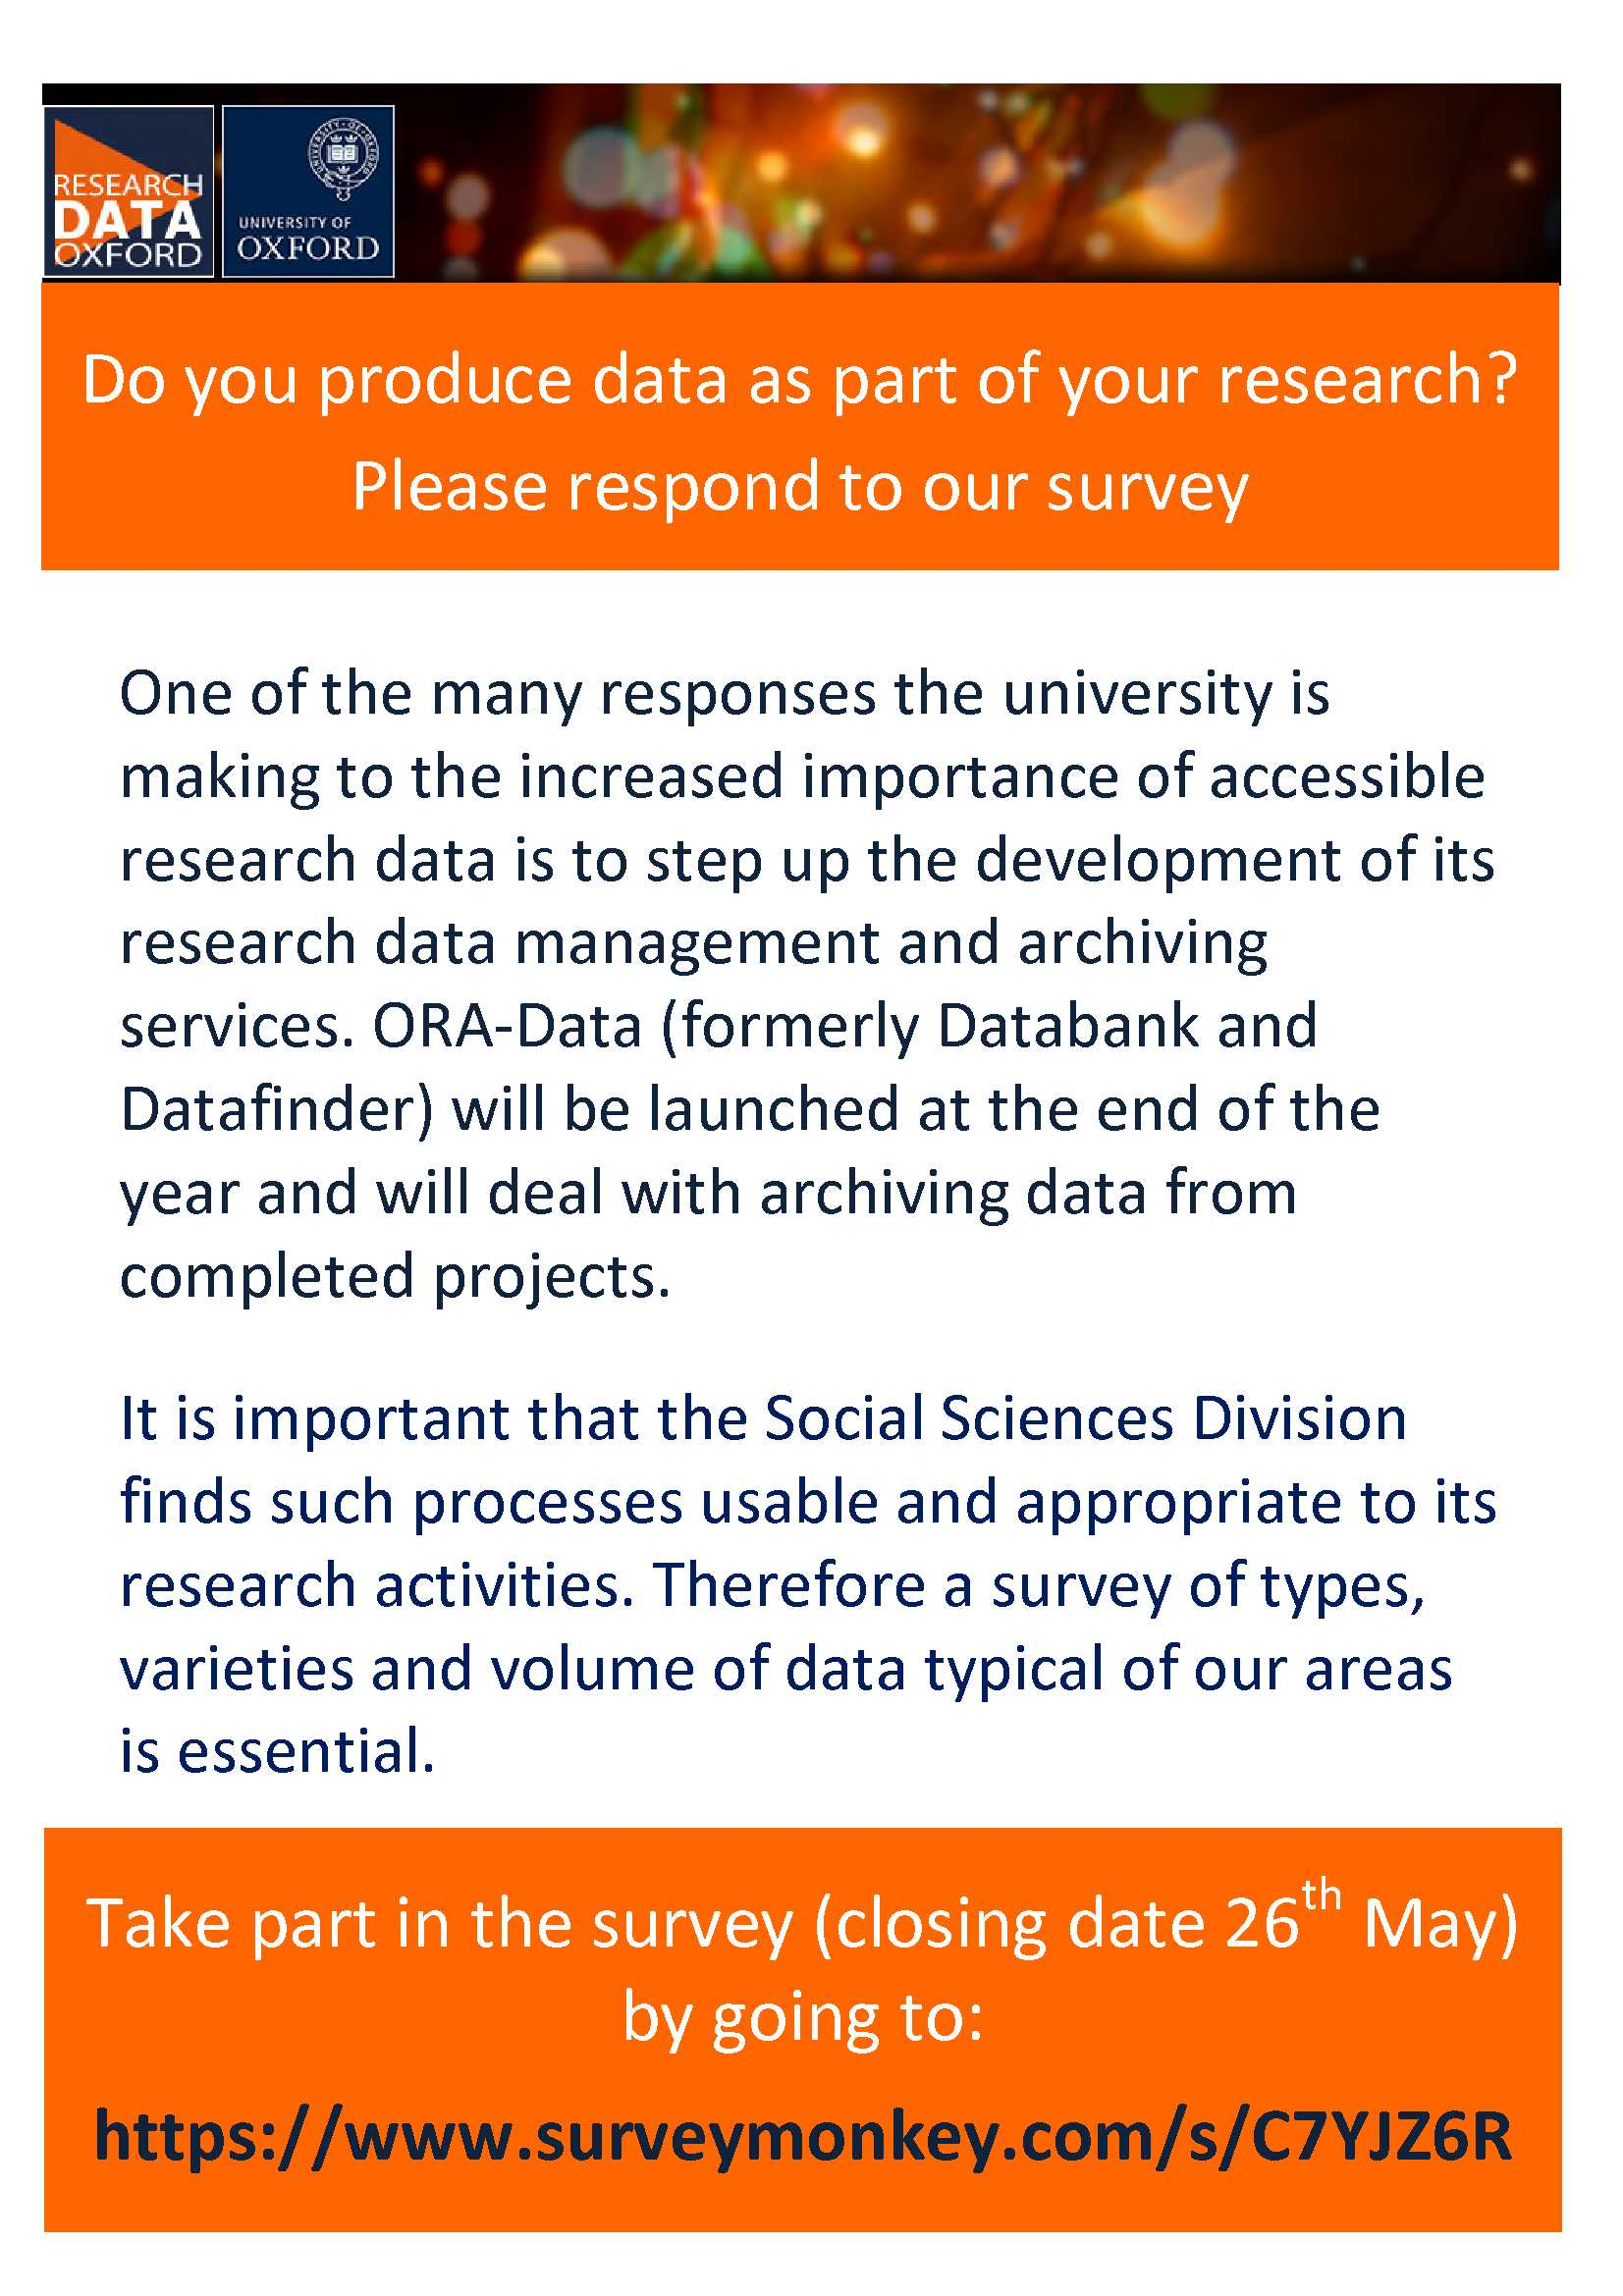 Research Data Management Survey Poster